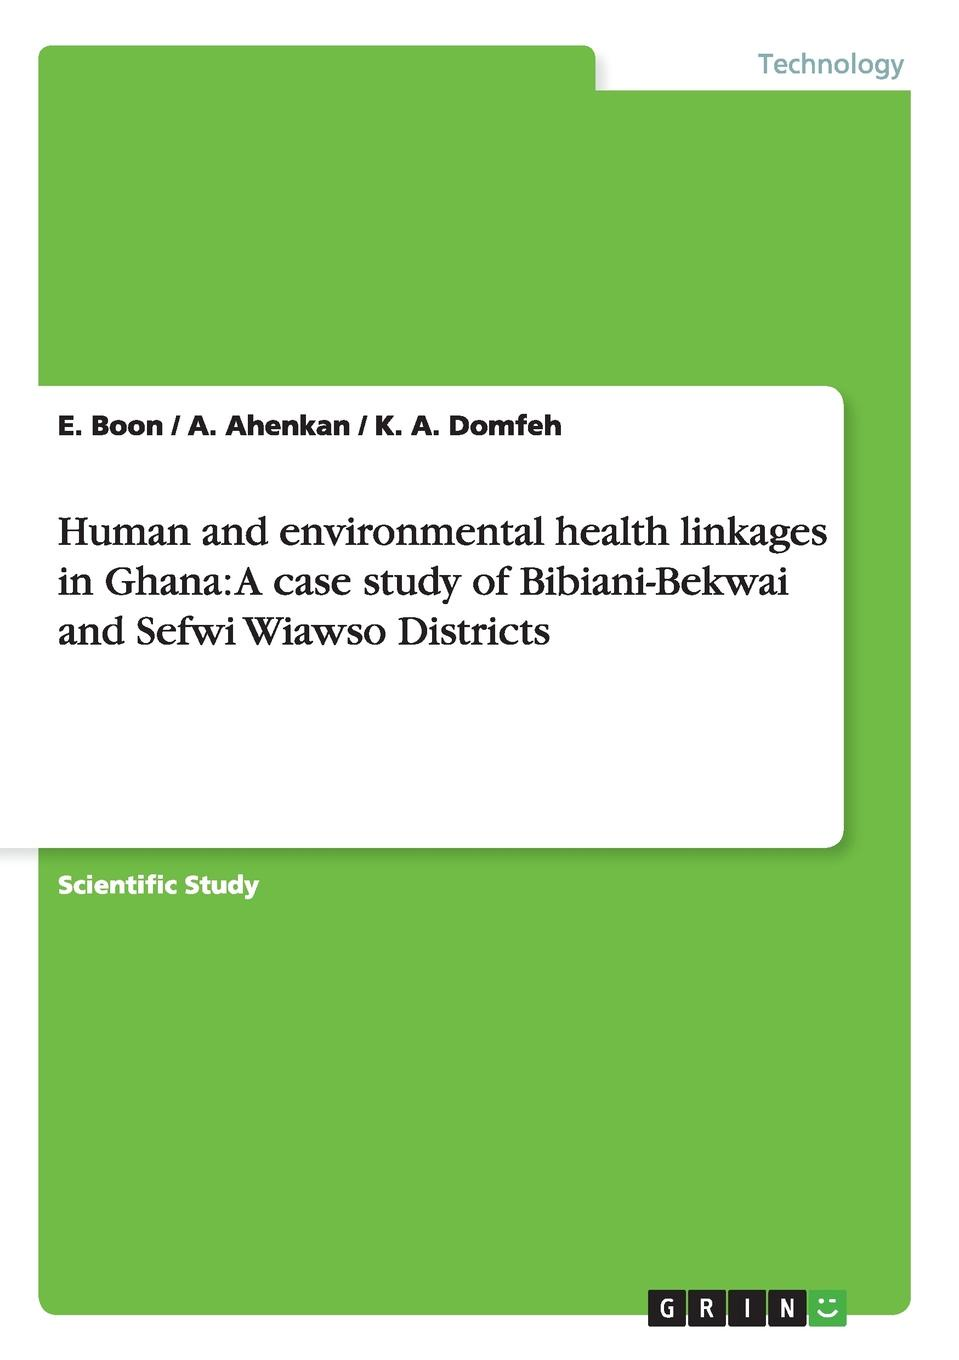 E. Boon, A. Ahenkan, K. A. Domfeh Human and environmental health linkages in Ghana. A case study of Bibiani-Bekwai and Sefwi Wiawso Districts kevin henke arsenic environmental chemistry health threats and waste treatment